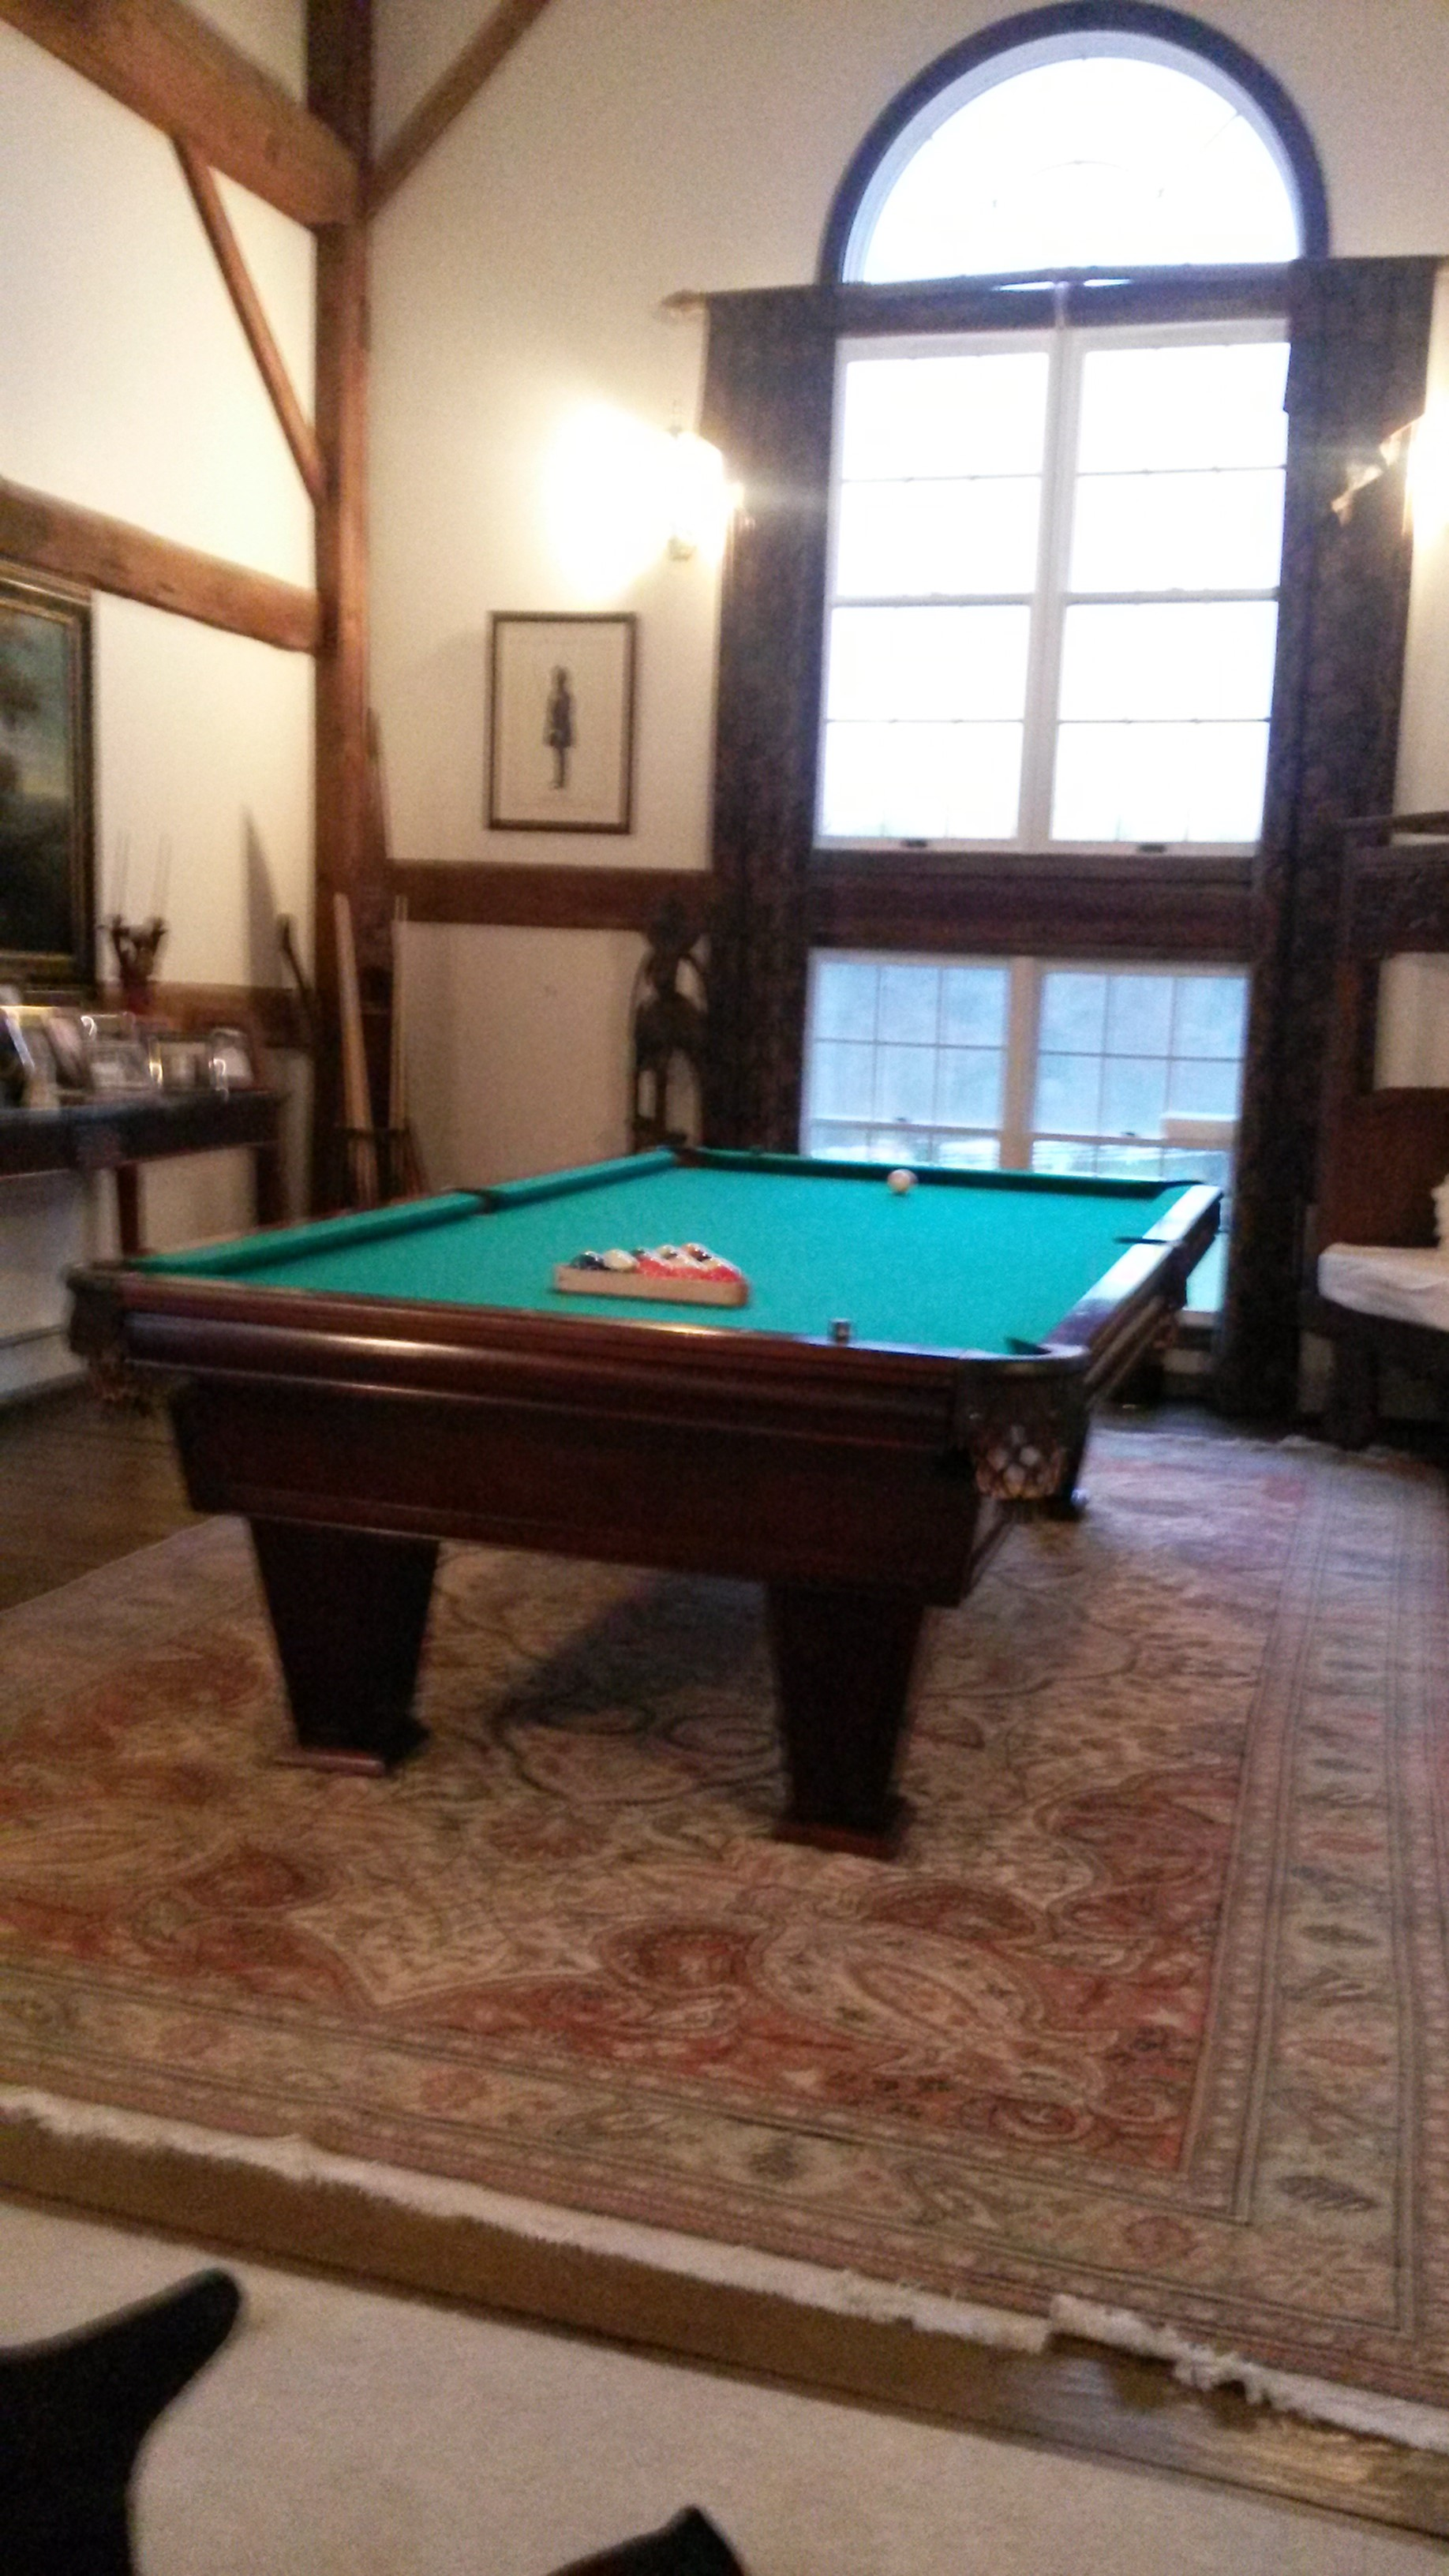 Pyramid Billiard Table Specialists Inc Water St Meadville PA - Pool table movers milwaukee wi